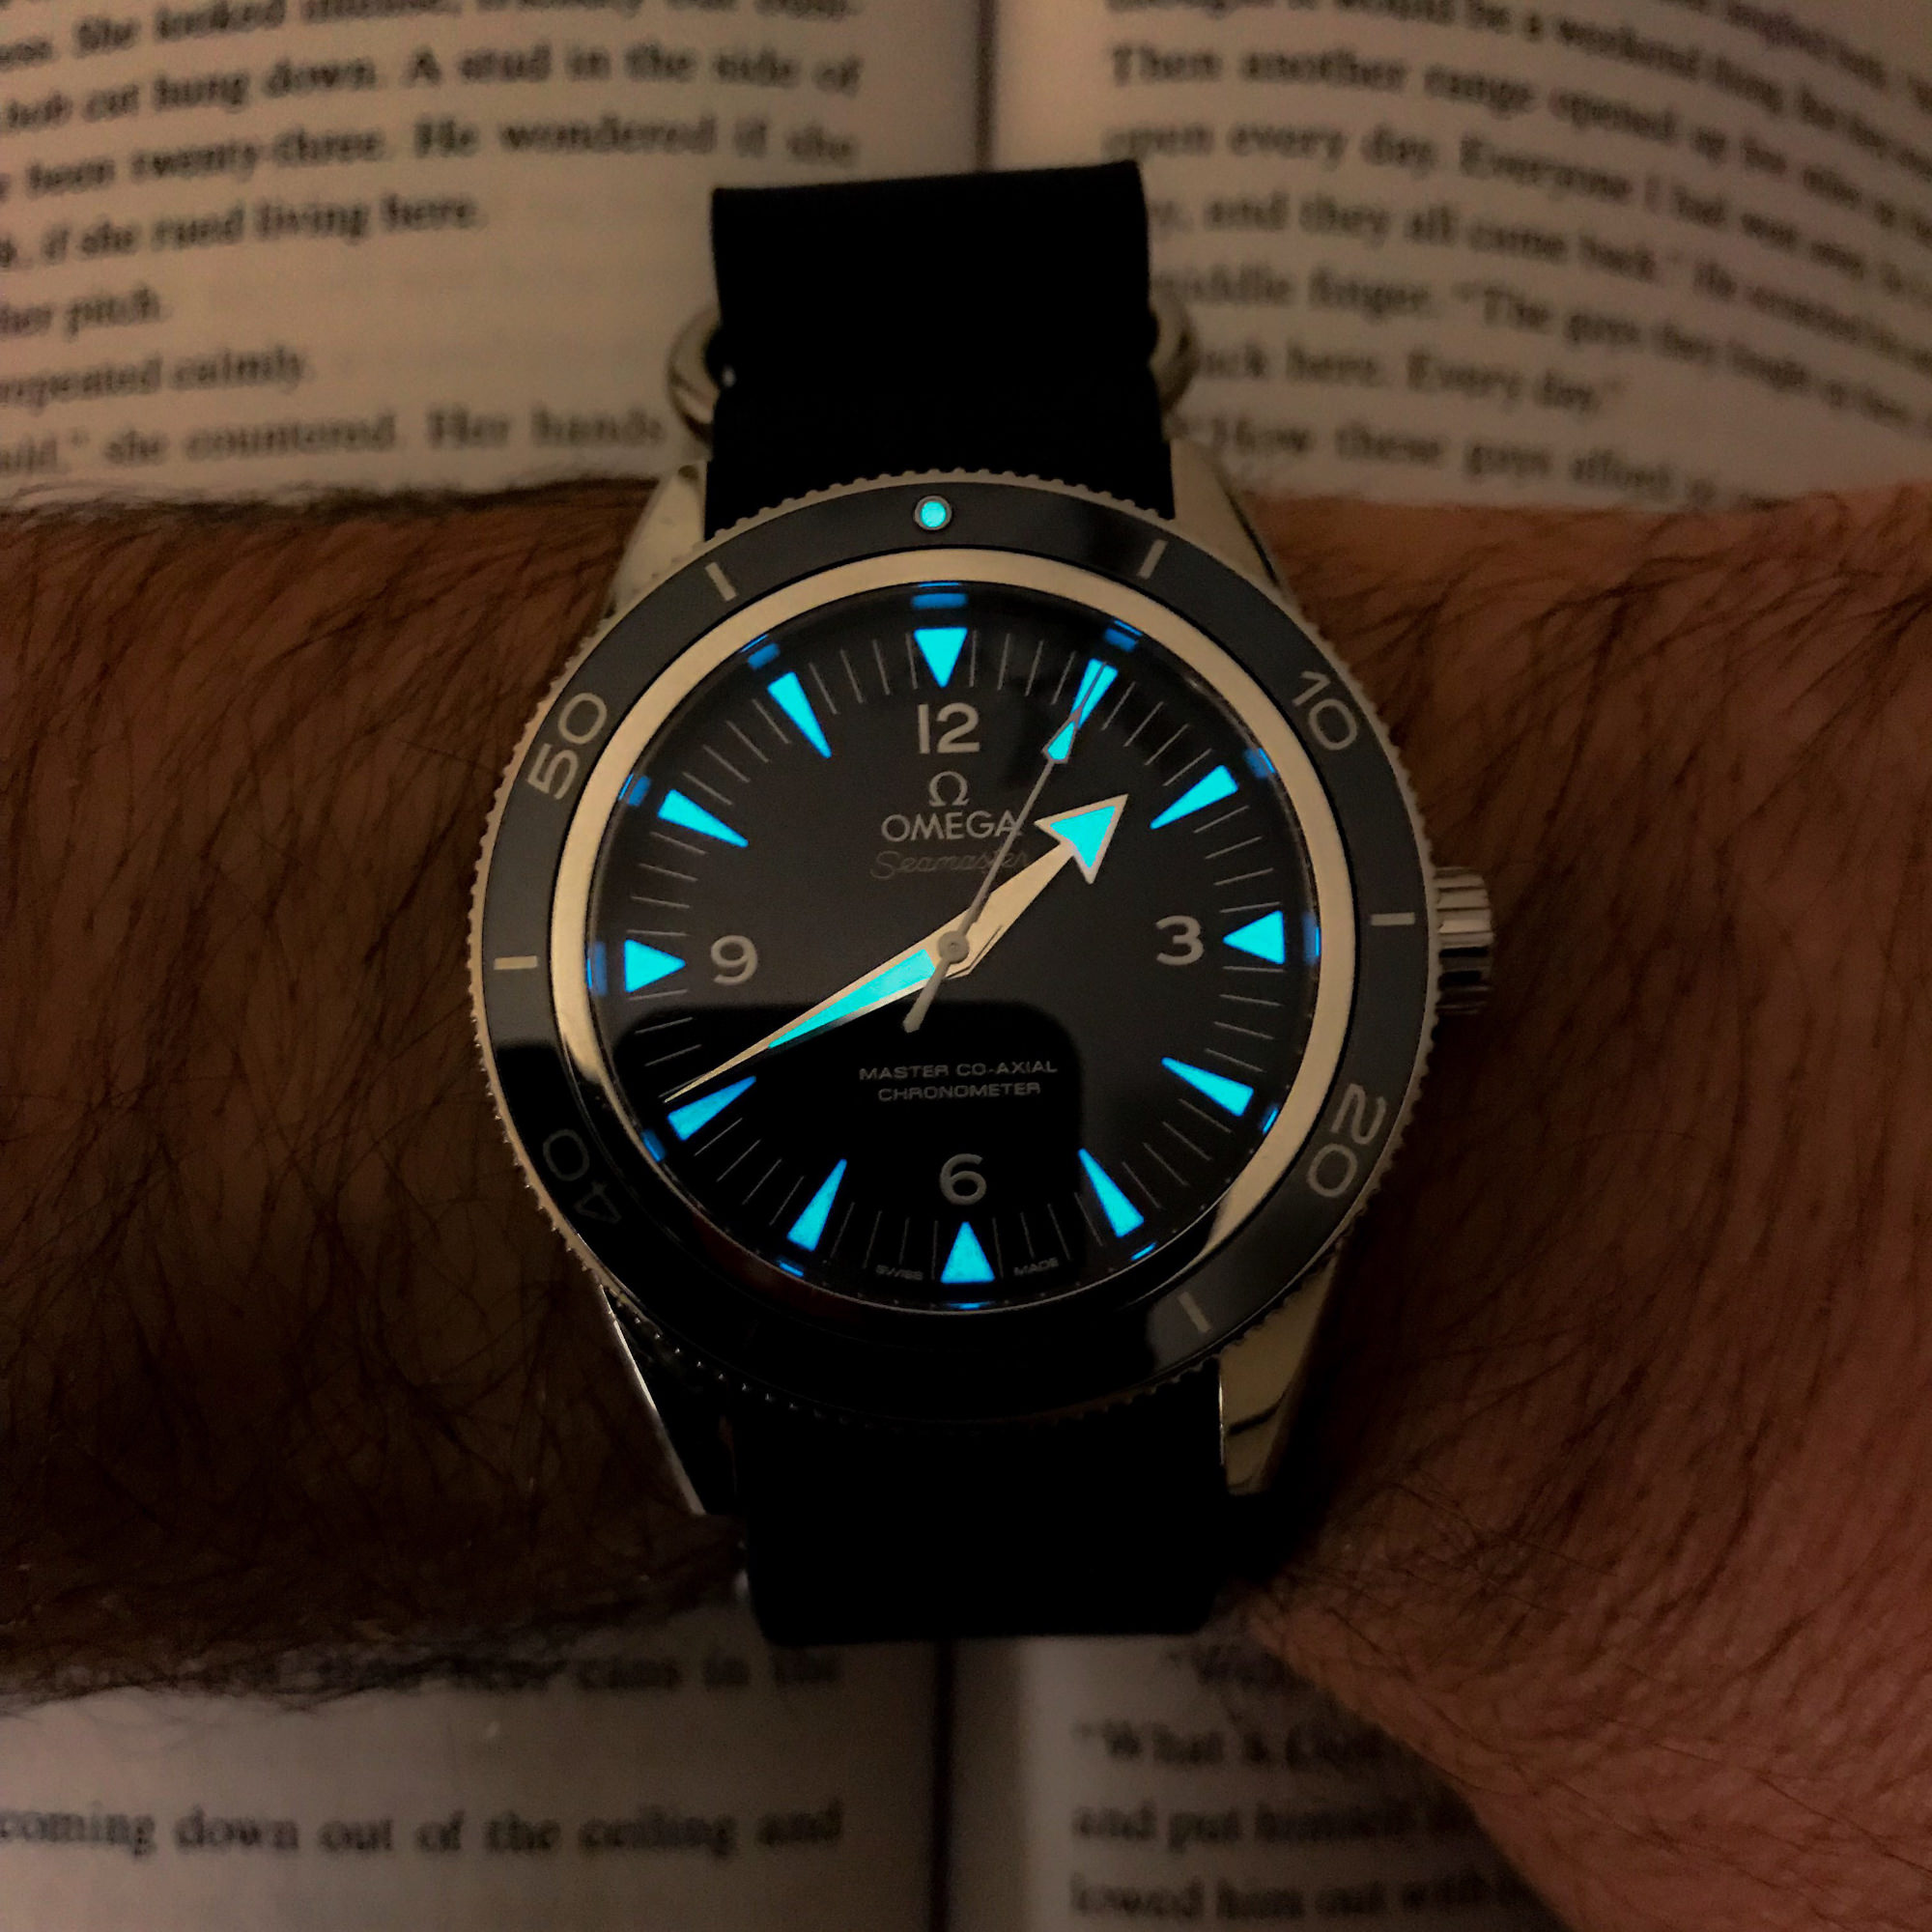 omega-seamaster-300-review-21